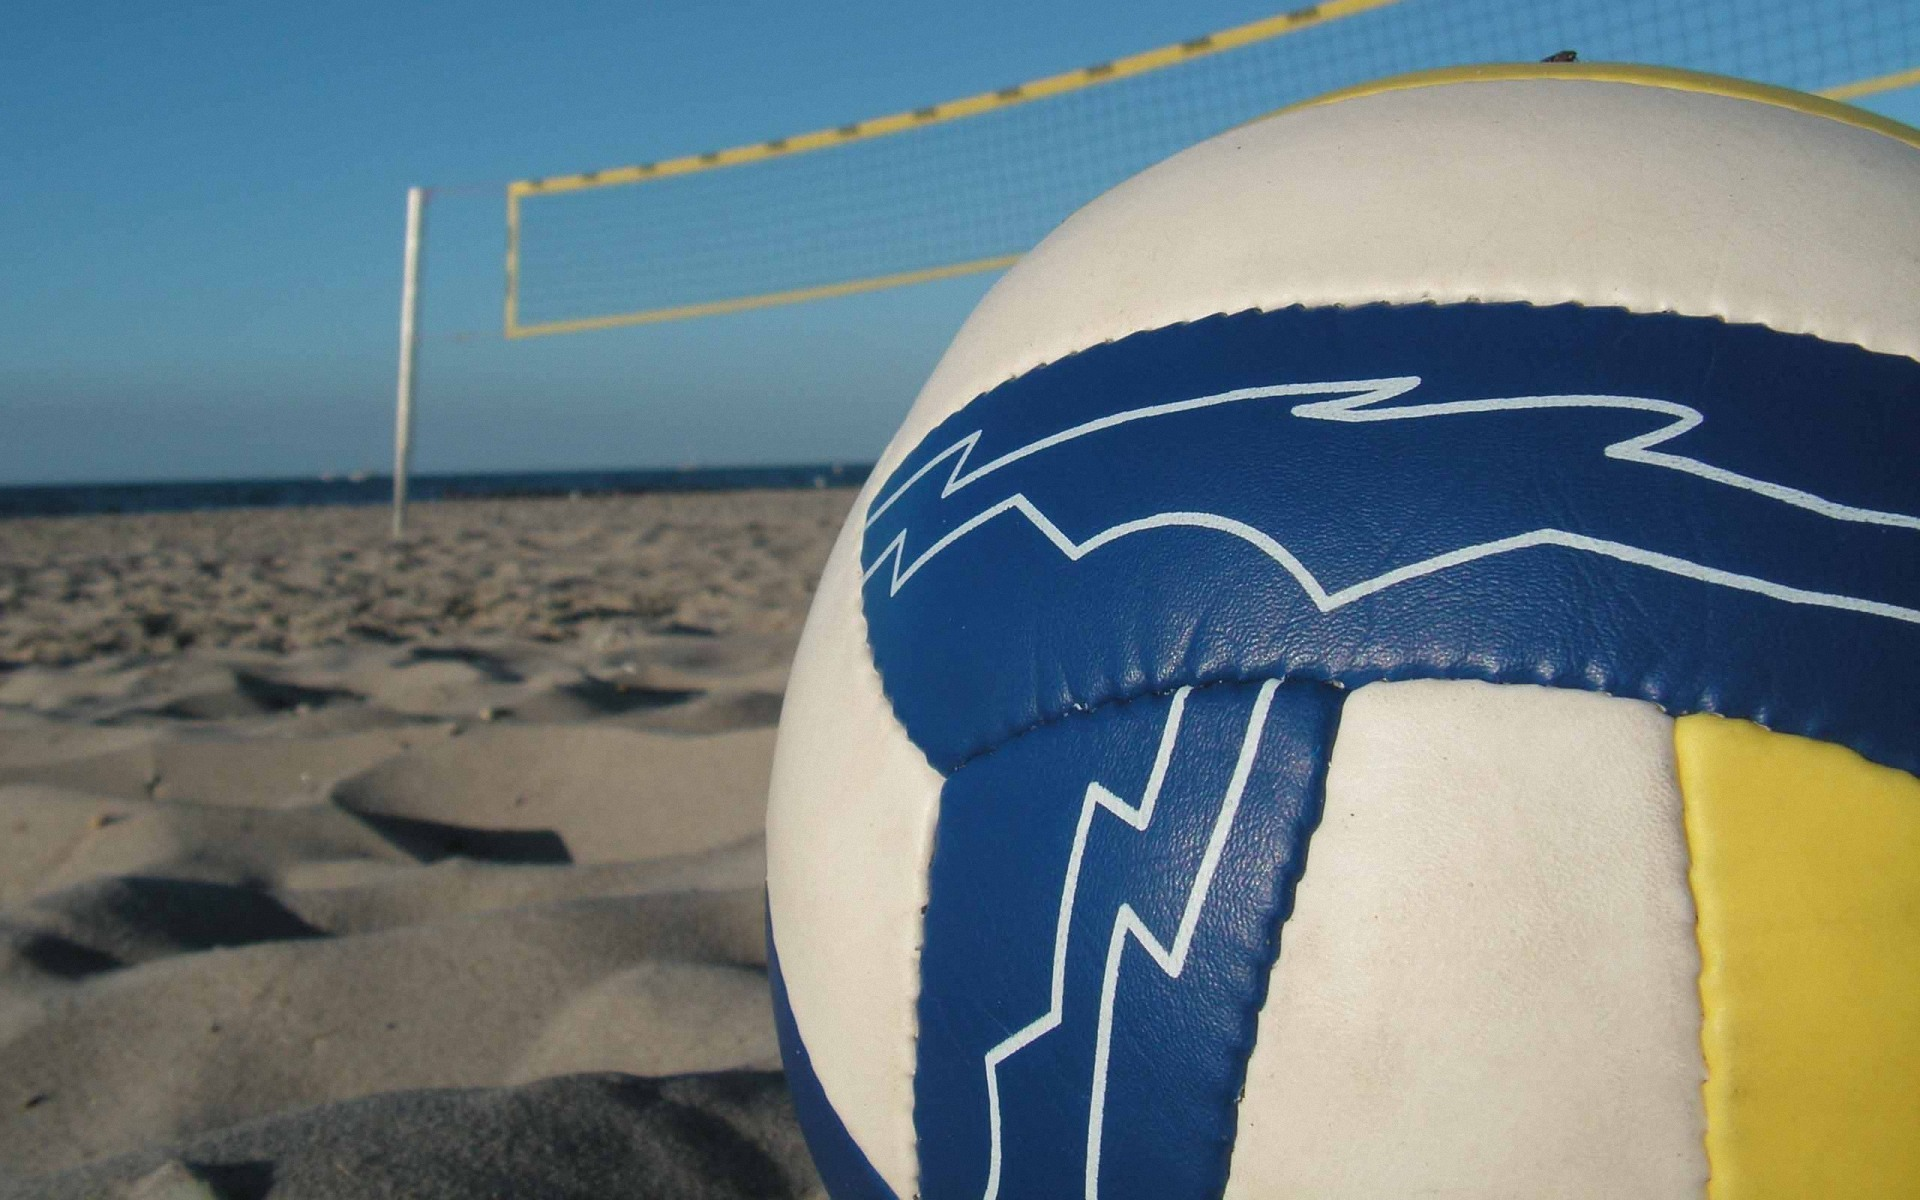 Volleyball Wallpaper Iphone Volleyball Wallpapers High Quality Download Free